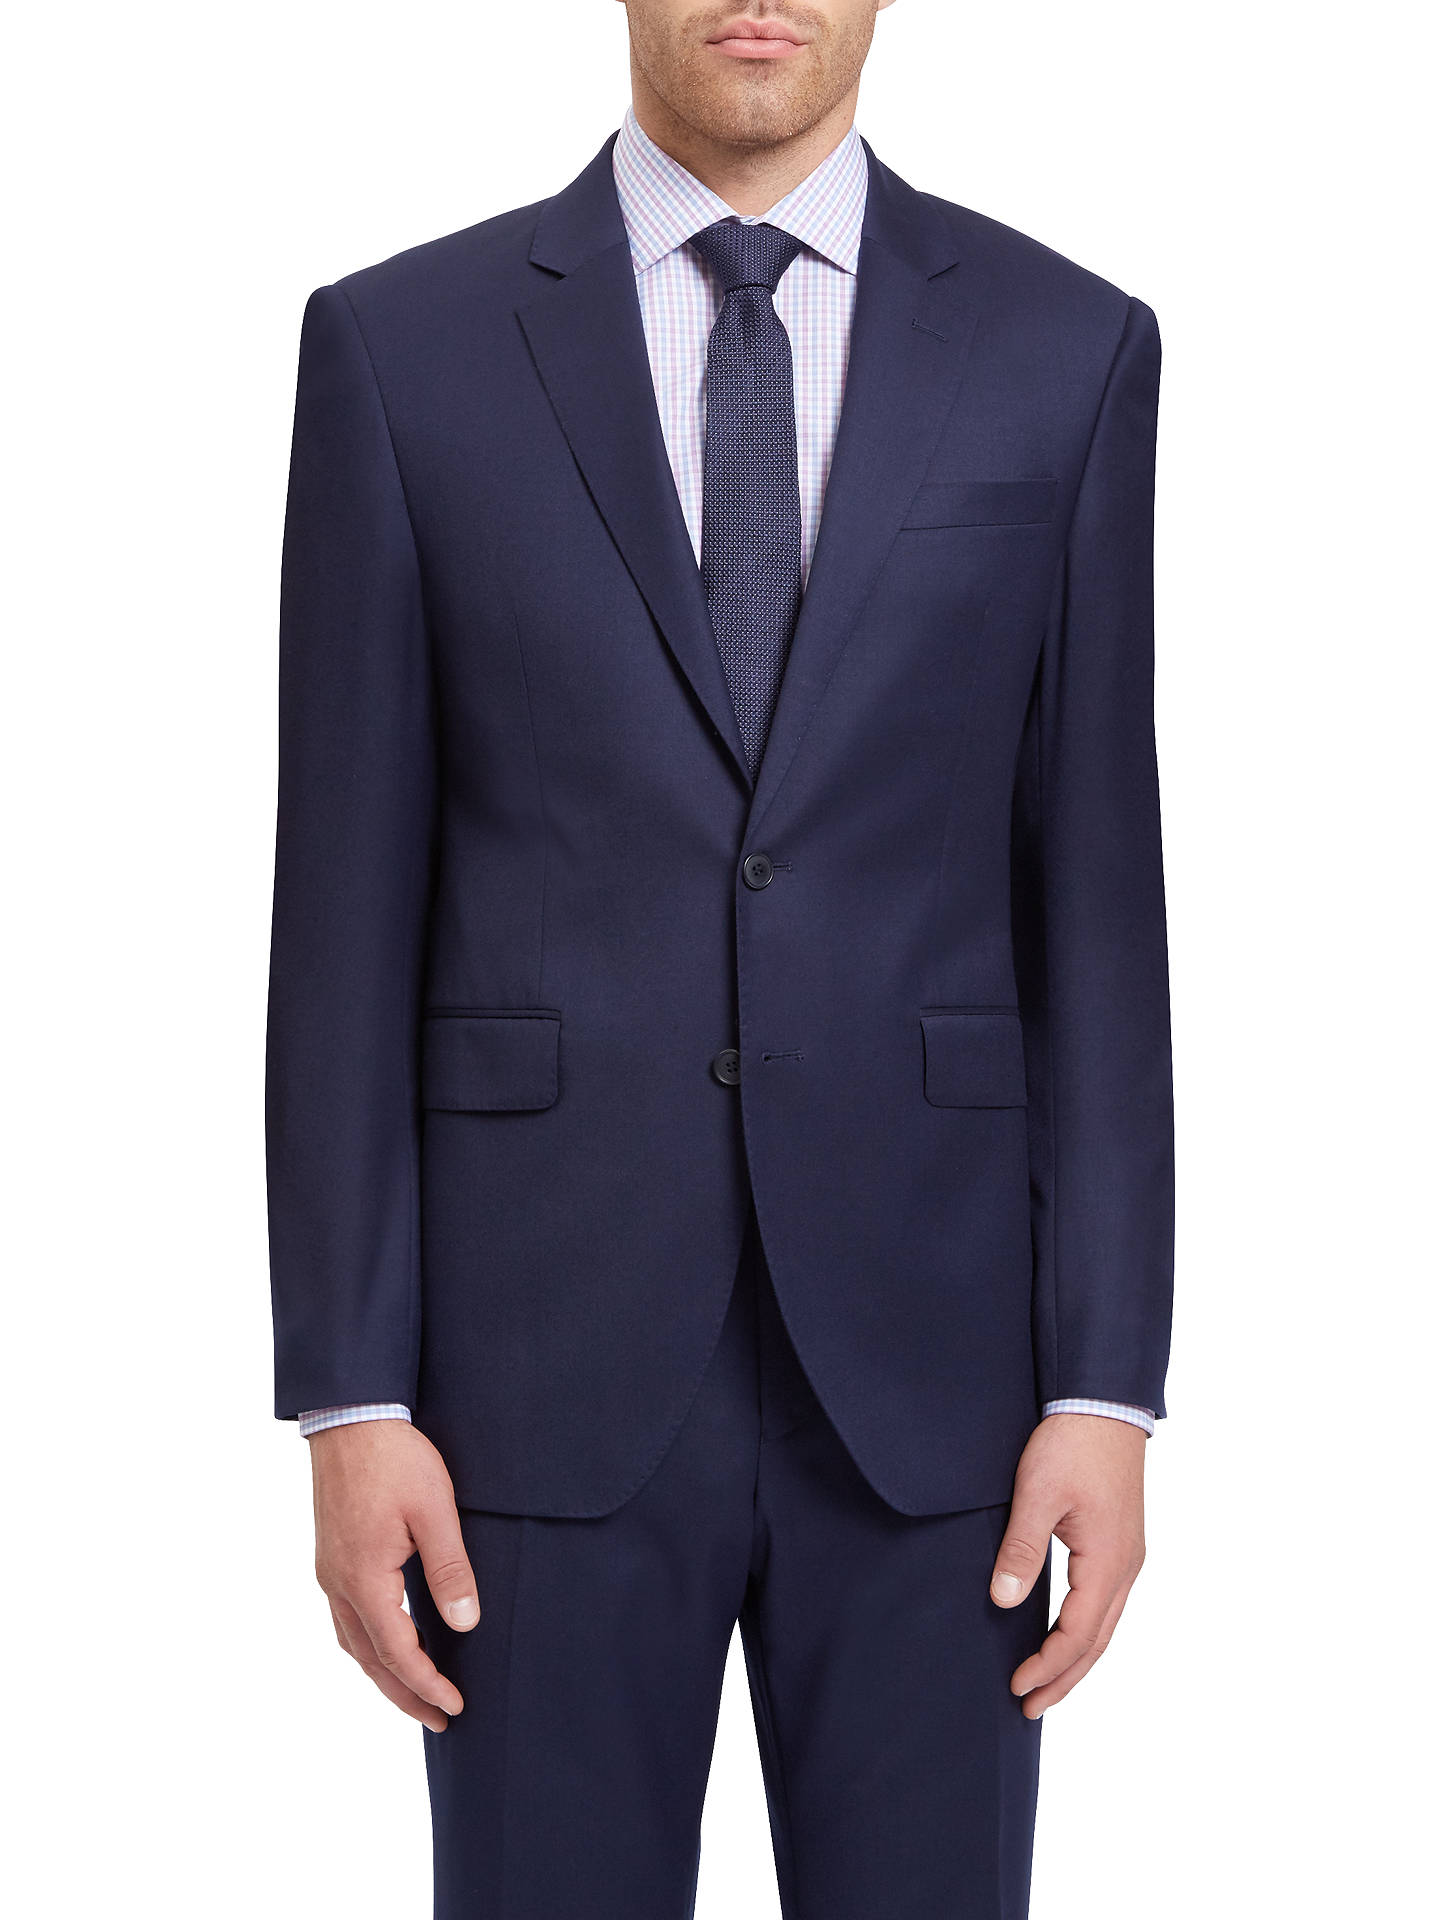 BuyJaeger Wool Flannel Regular Fit Suit Jacket, Navy, 40R Online at johnlewis.com